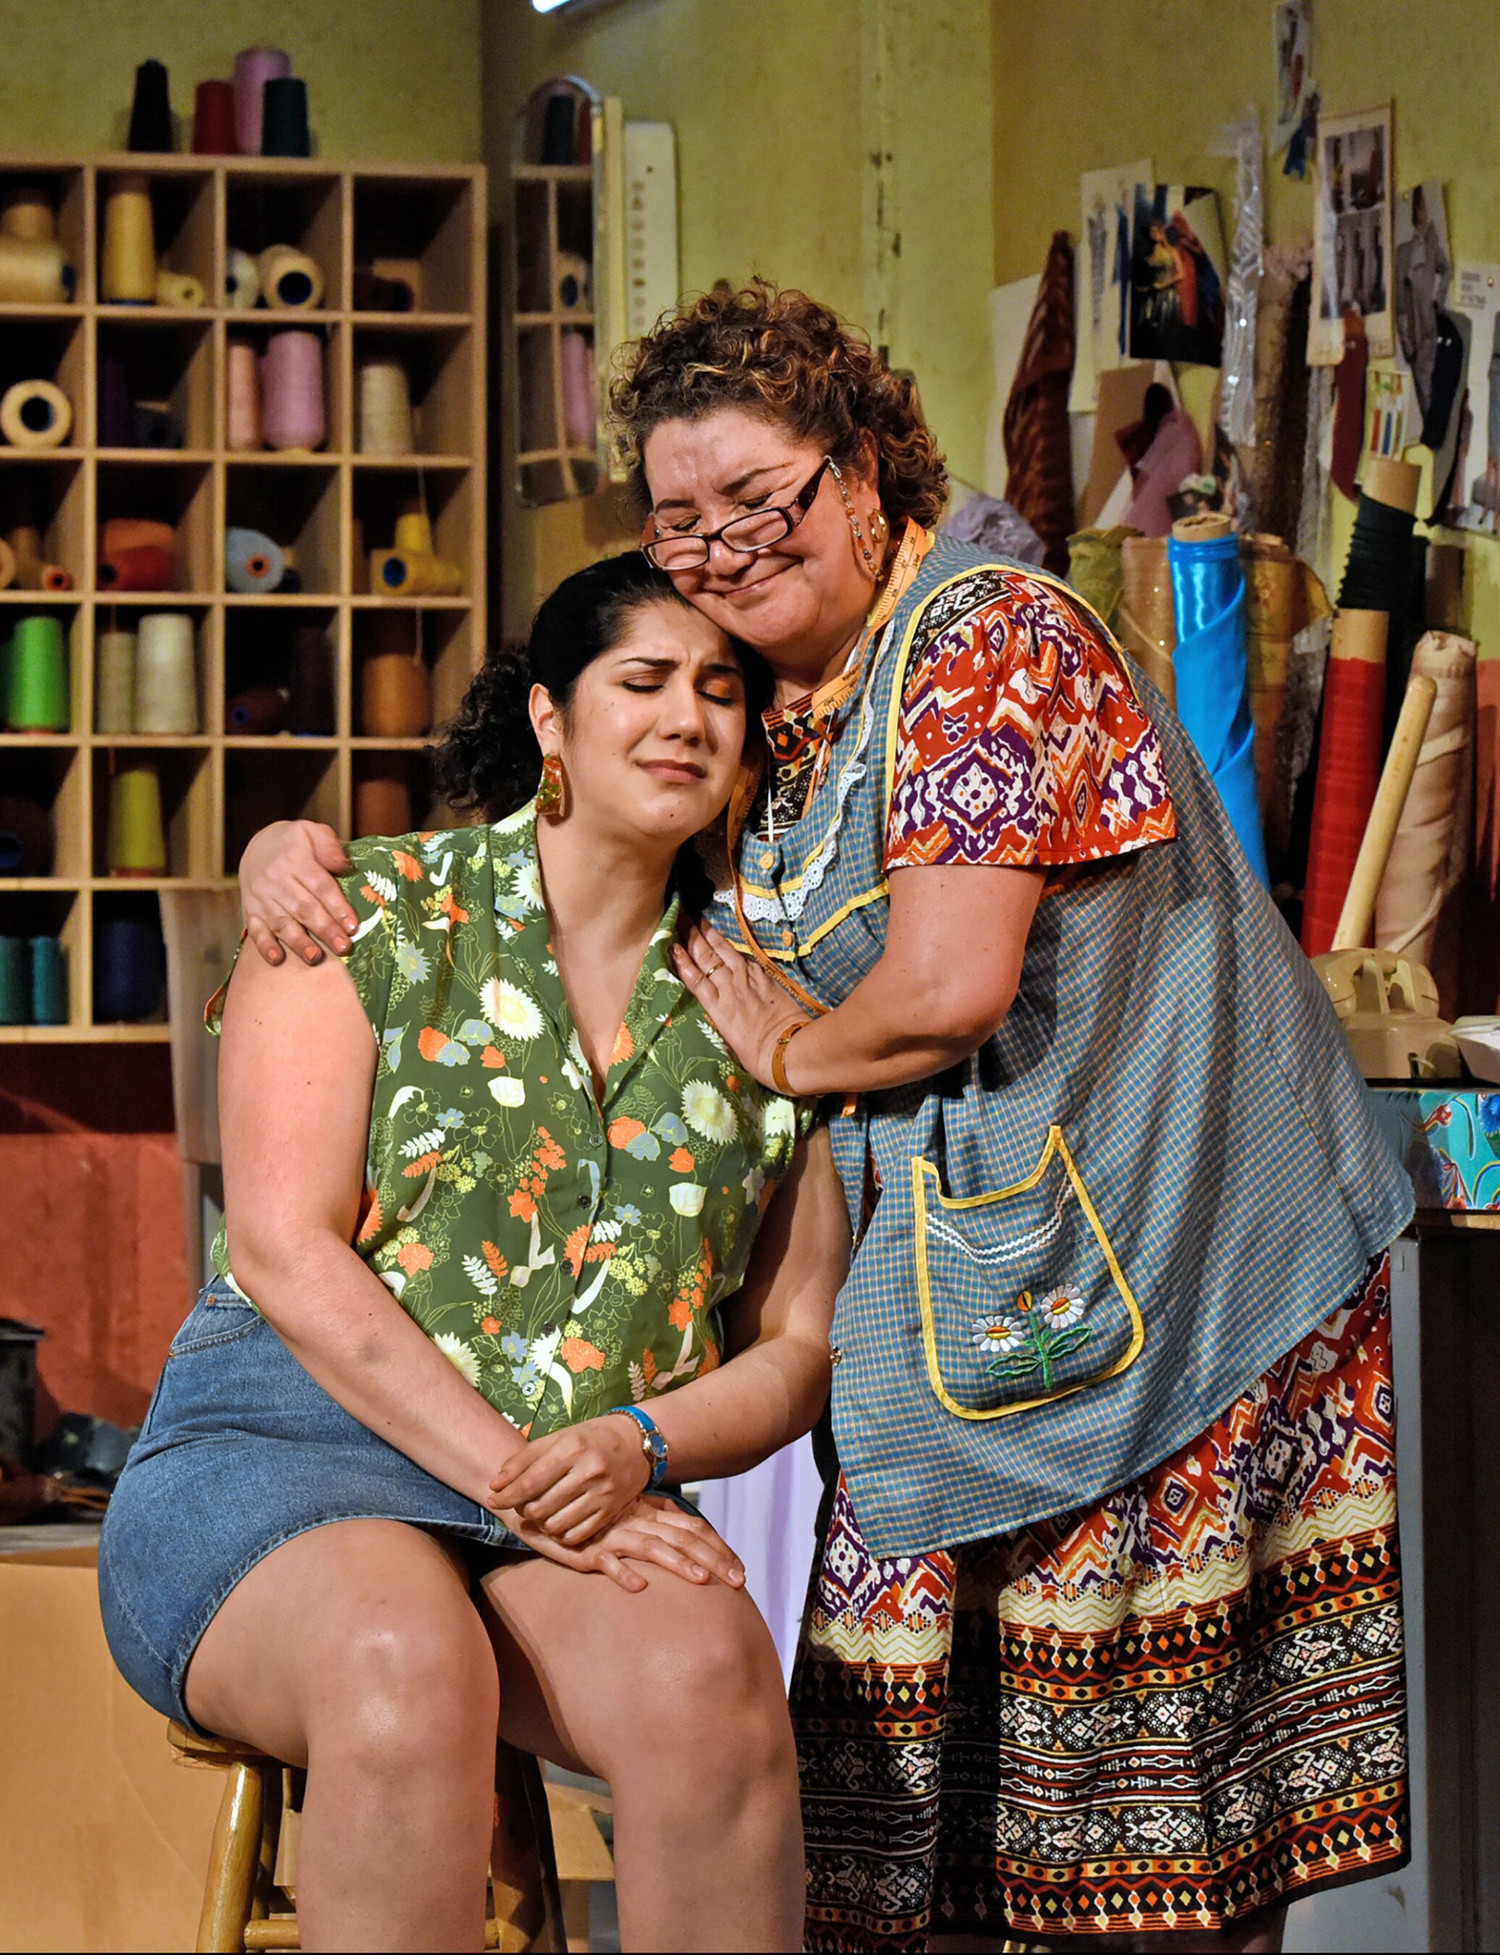 BWW Review: REAL WOMEN HAVE CURVES at Dallas Theatre Center